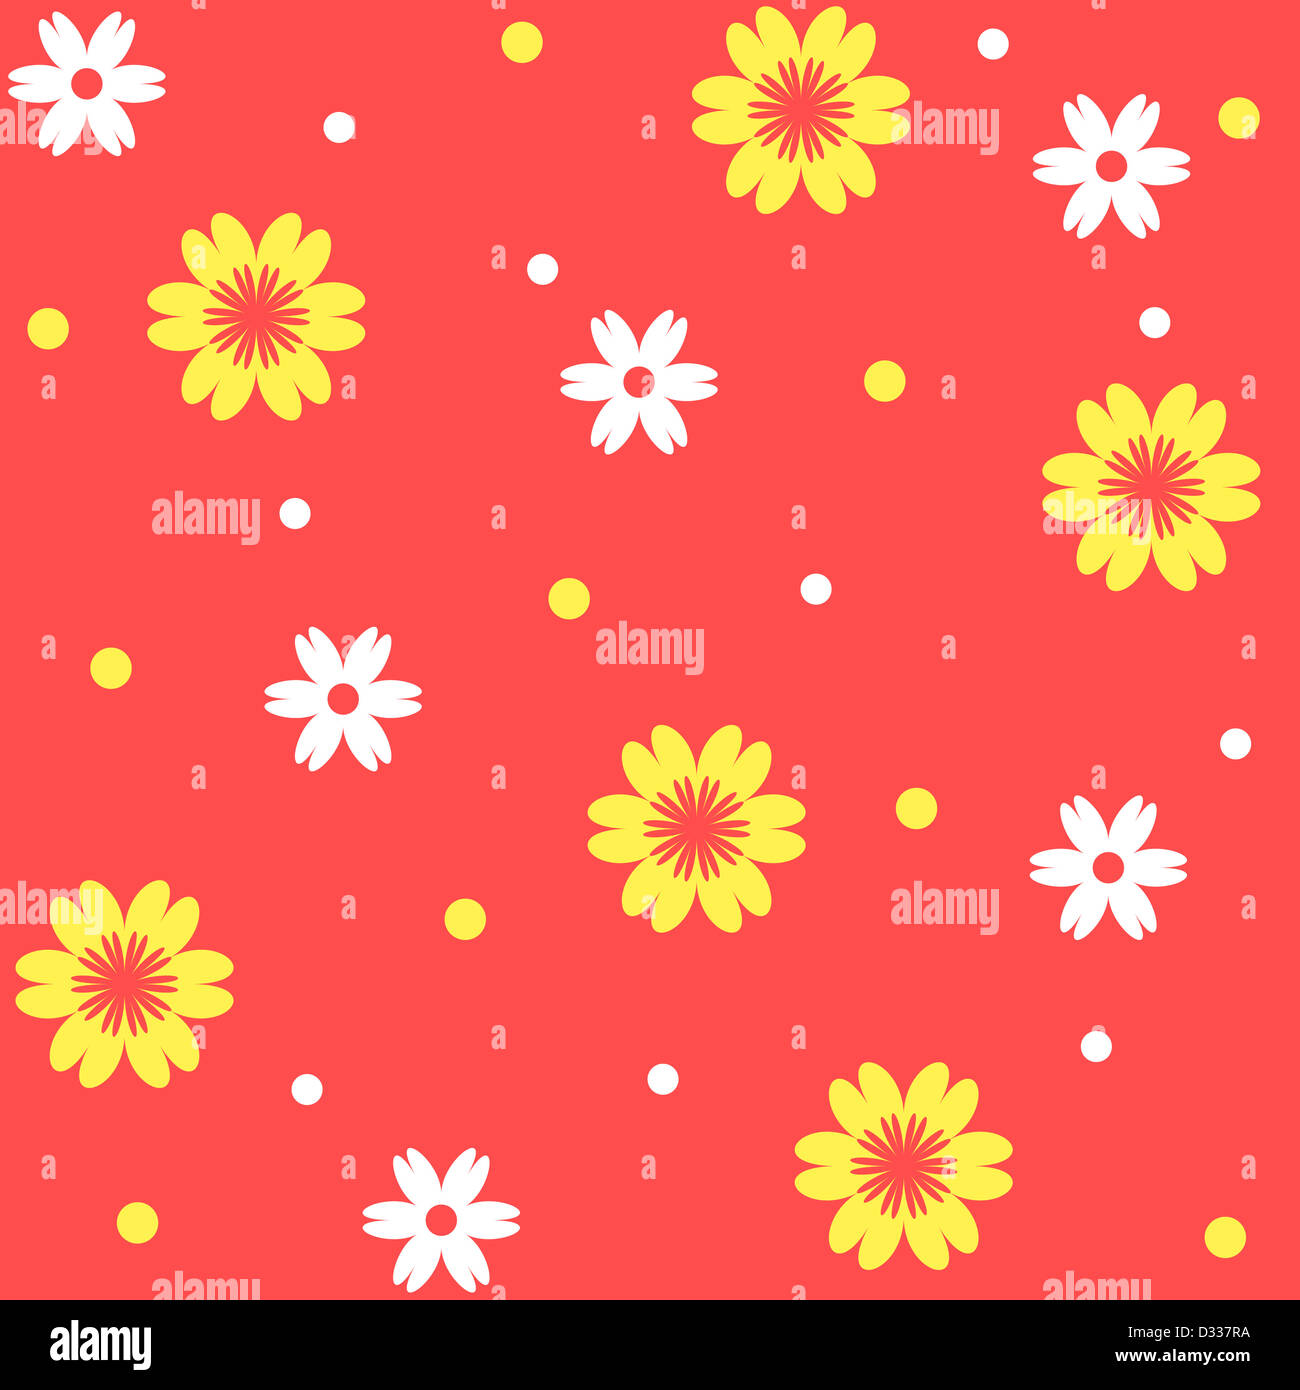 Yellow and white floral pattern on orange Stock Photo